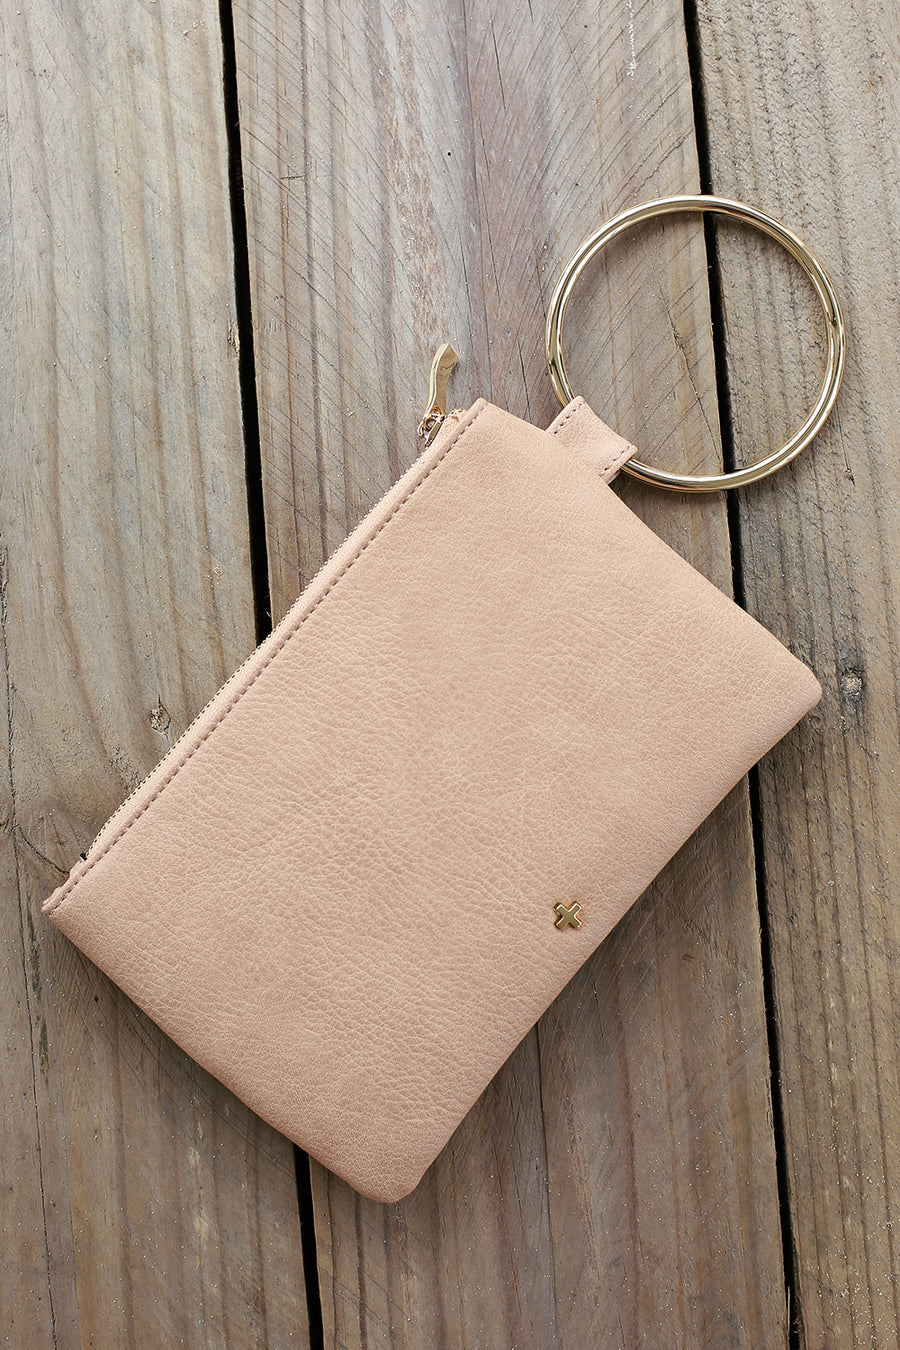 Coco Clutch in Nude